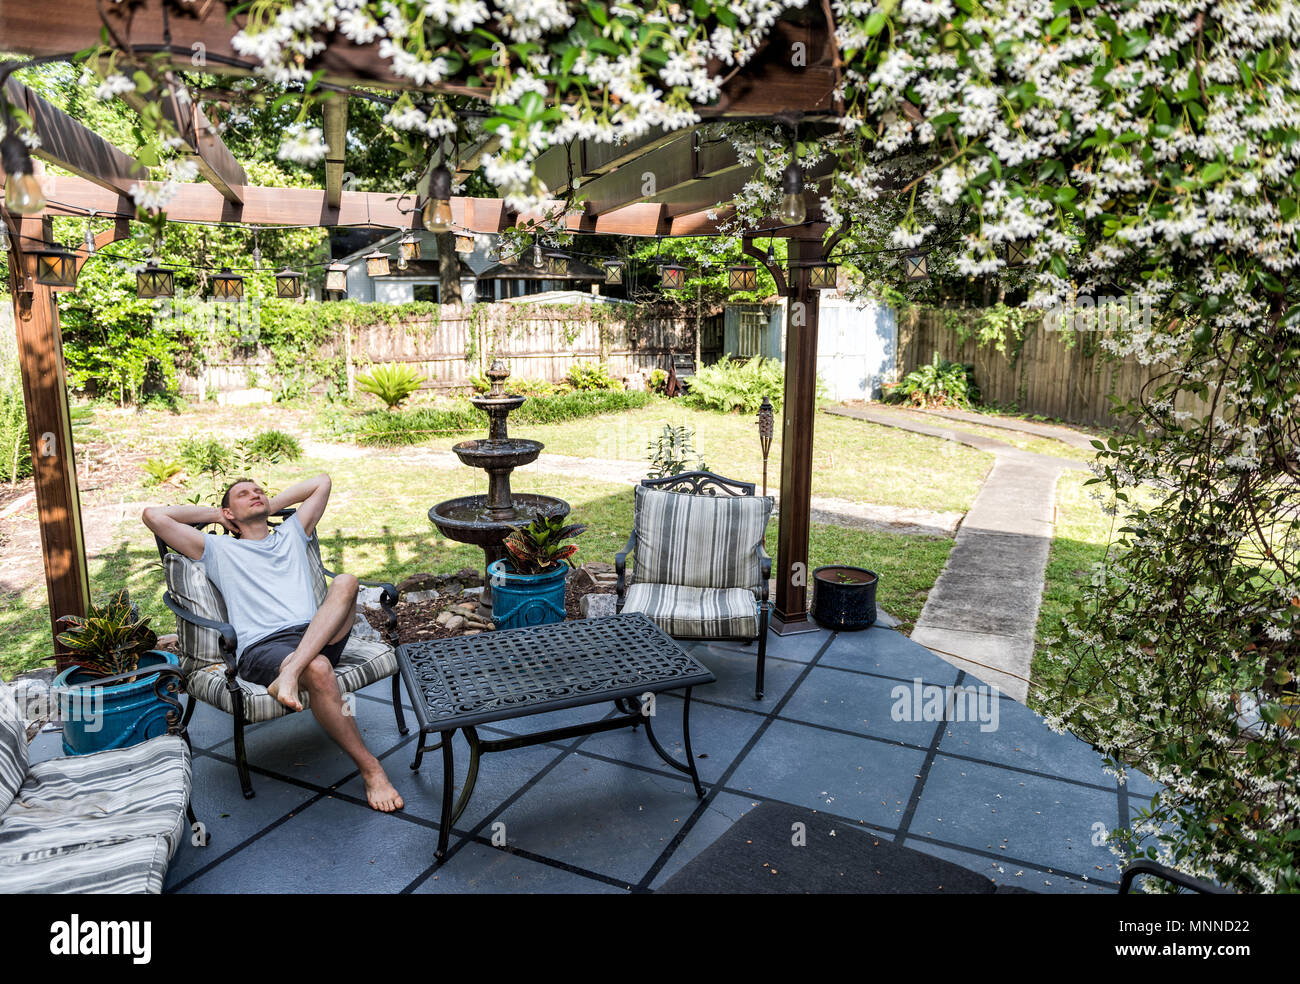 Young Man Lying Down On Patio Lounge Chair In Outdoor Spring Flower Garden  In Backyard Porch Of Home Happy Smiling In Zen With Fountain, Pergola Canop